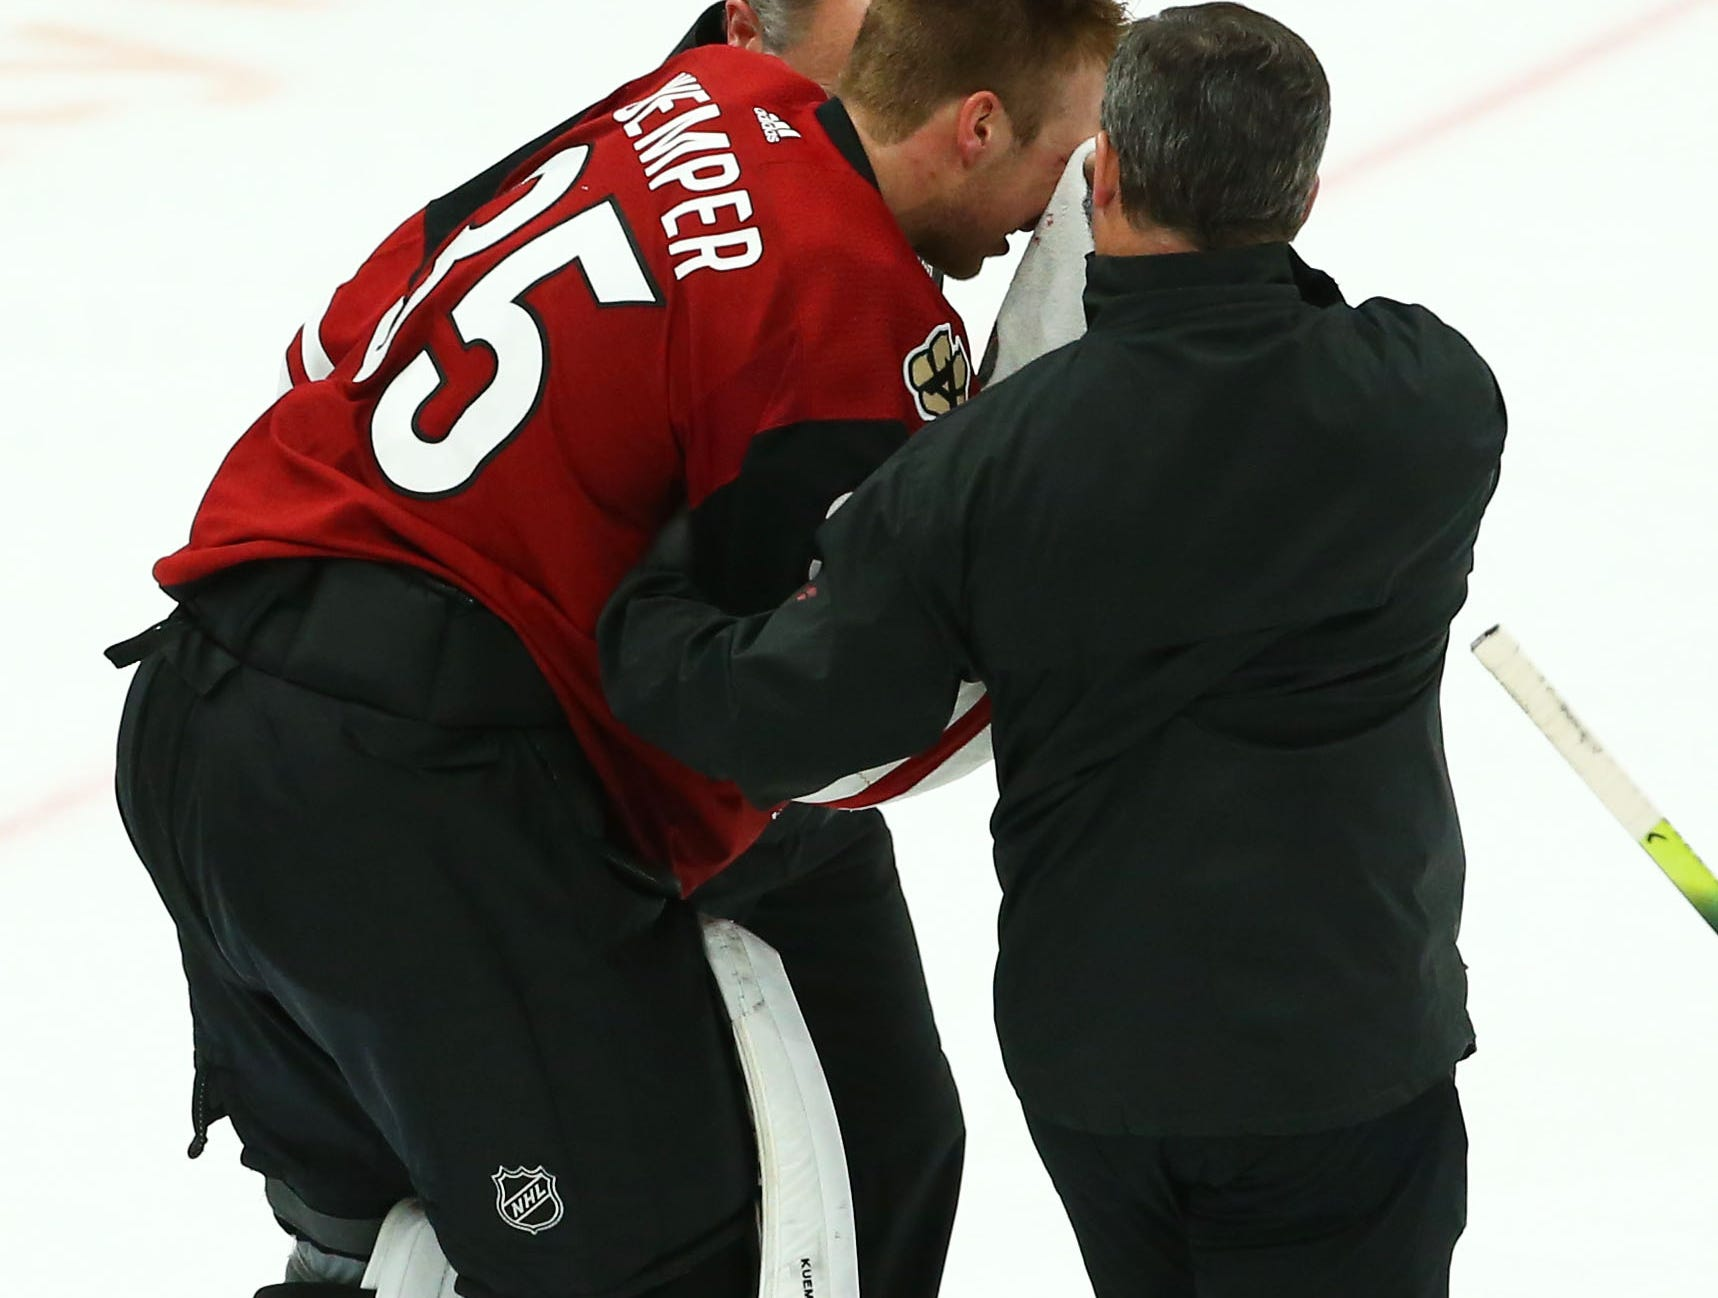 Arizona Coyotes goaltender Darcy Kuemper (35) takes a stick to the face from Los Angeles Kings center Trevor Lewis (22) after scoring a goal in the third period on Apr. 2, 2019 at Gila River Arena in Glendale, Ariz. Kuemper left the game due to this injury.